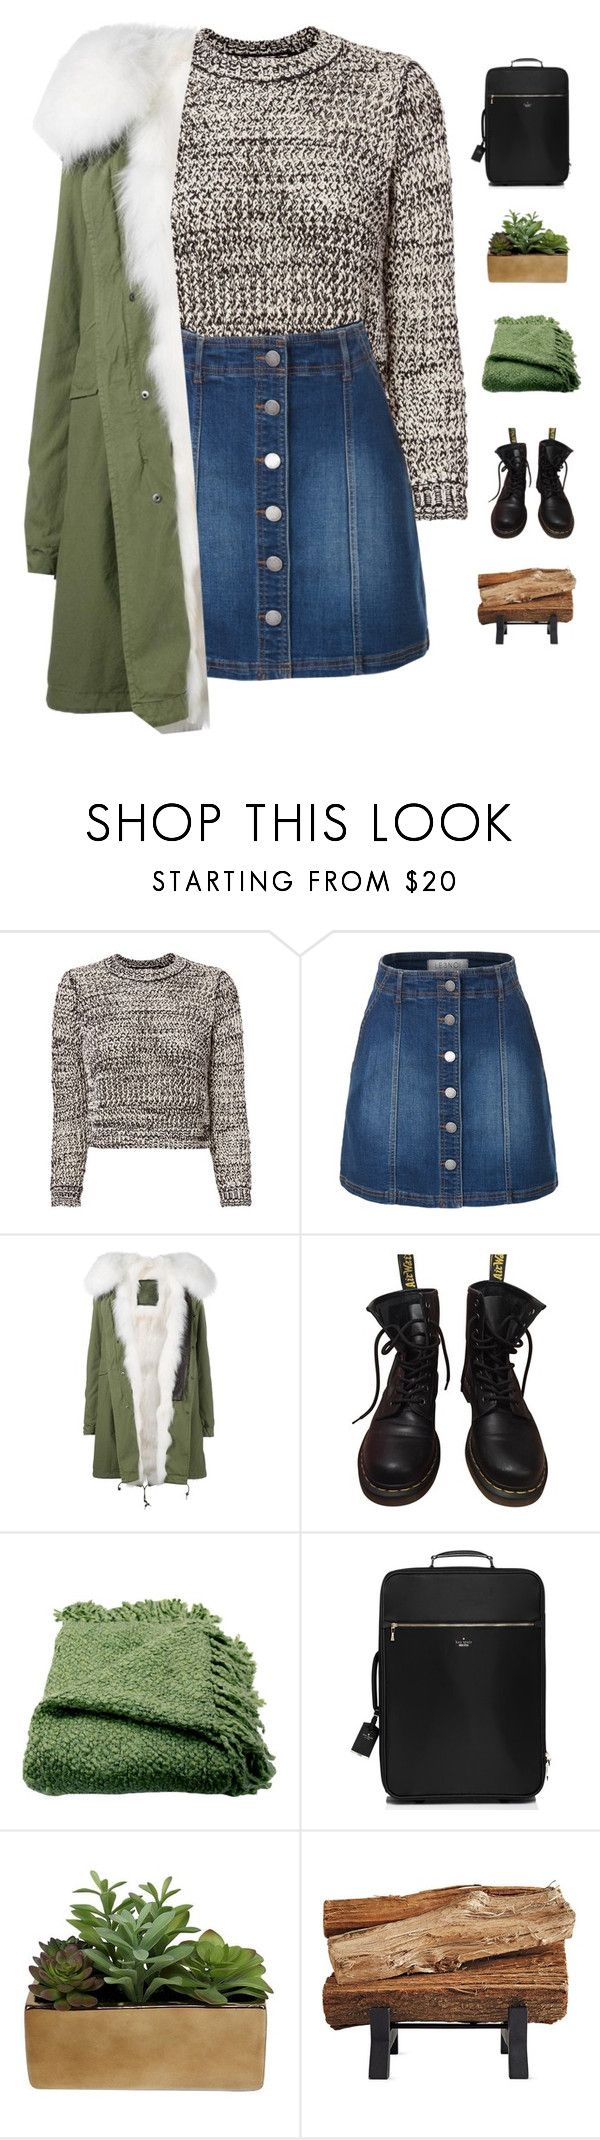 """Camp getaway"" by genesis129 ❤ liked on Polyvore featuring 10 Crosby Derek Lam, LE3NO, Mr & Mrs Italy, Dr. Martens, Woven Workz, Kate Spade, Threshold and vintage"